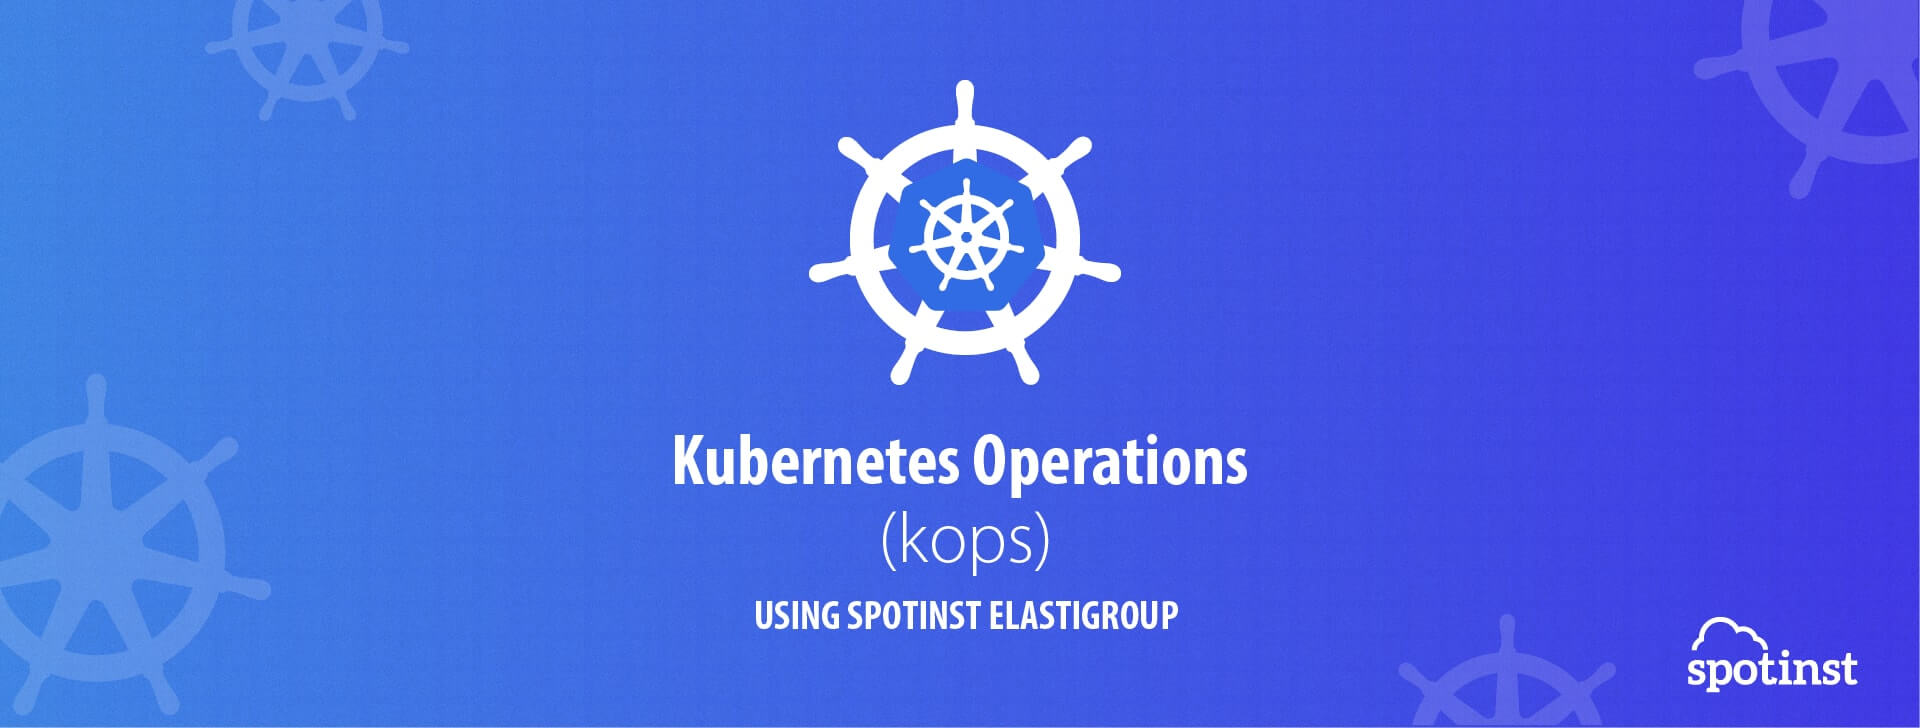 Elastigroup & Kubernetes Operations (kops)